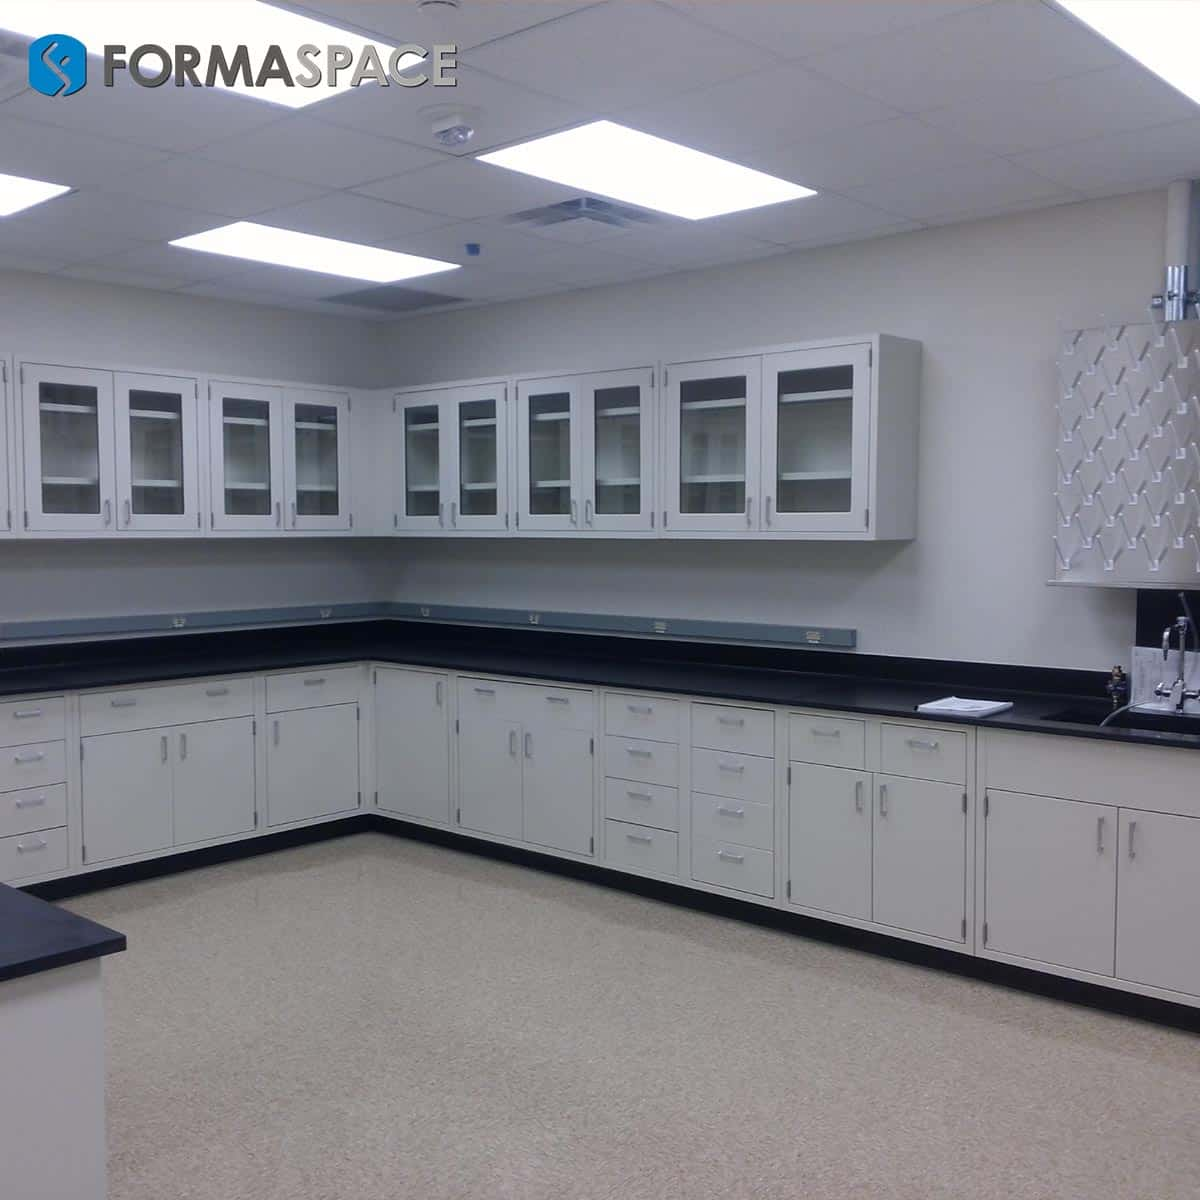 casework installment with pegboard and upper glass cabinets